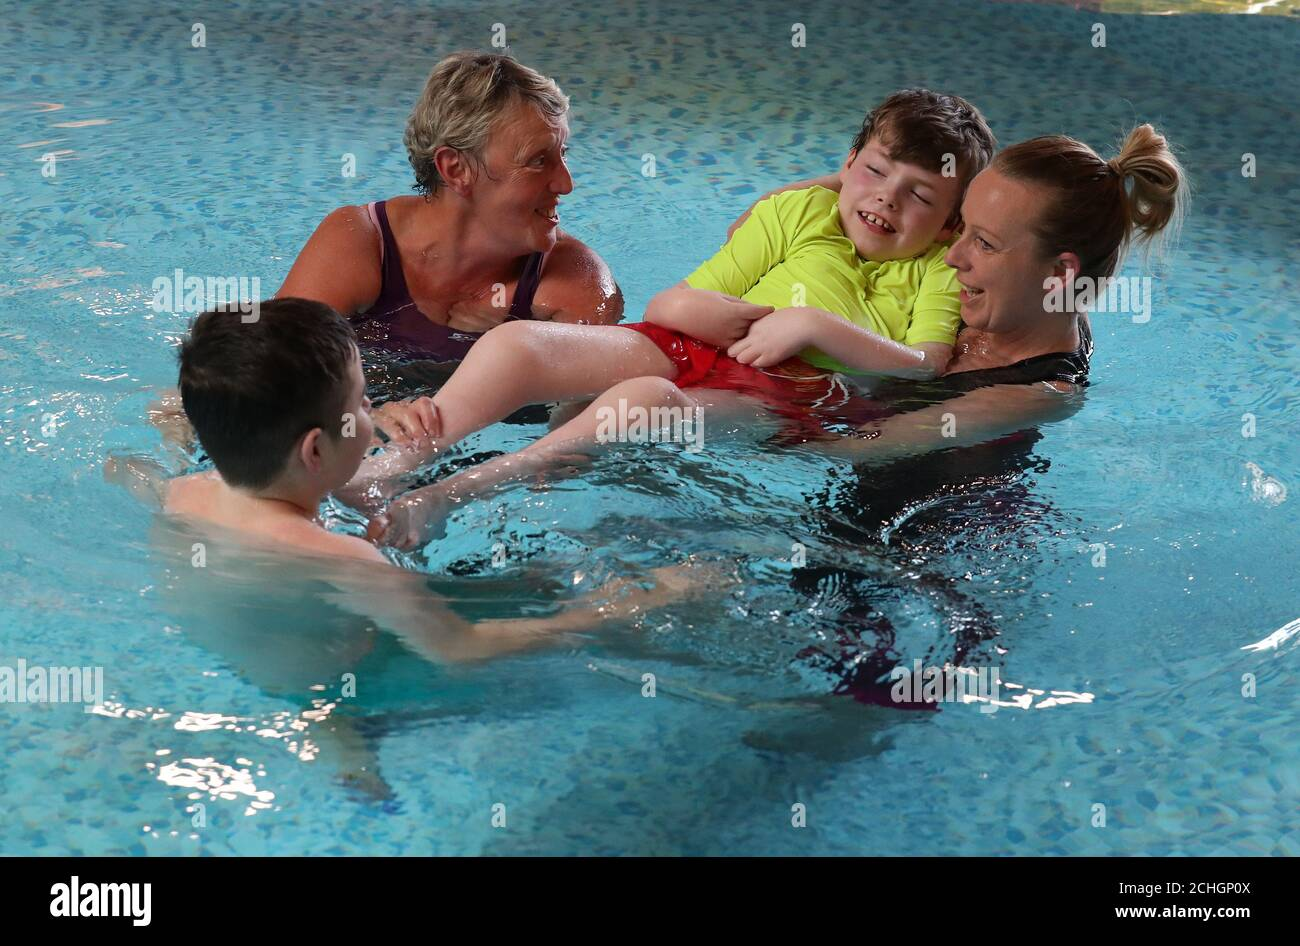 Embargoed to 0001 Monday June 22 Early Years Practitoner Carole King (left) alongside Nicola Devlin with her sons Sean Kearns and Evan (back to camera) as they take part in Parent-led aquatic therapy in the Hydrotherapy pool at the Craighalbert Centre. Coronavirus adaptations have been installed at the Scottish Centre for Children with Motor Impairments, Craighalbert Centre, Cumbernauld, as Scotland continues gradually lifting coronavirus lockdown measures. Stock Photo